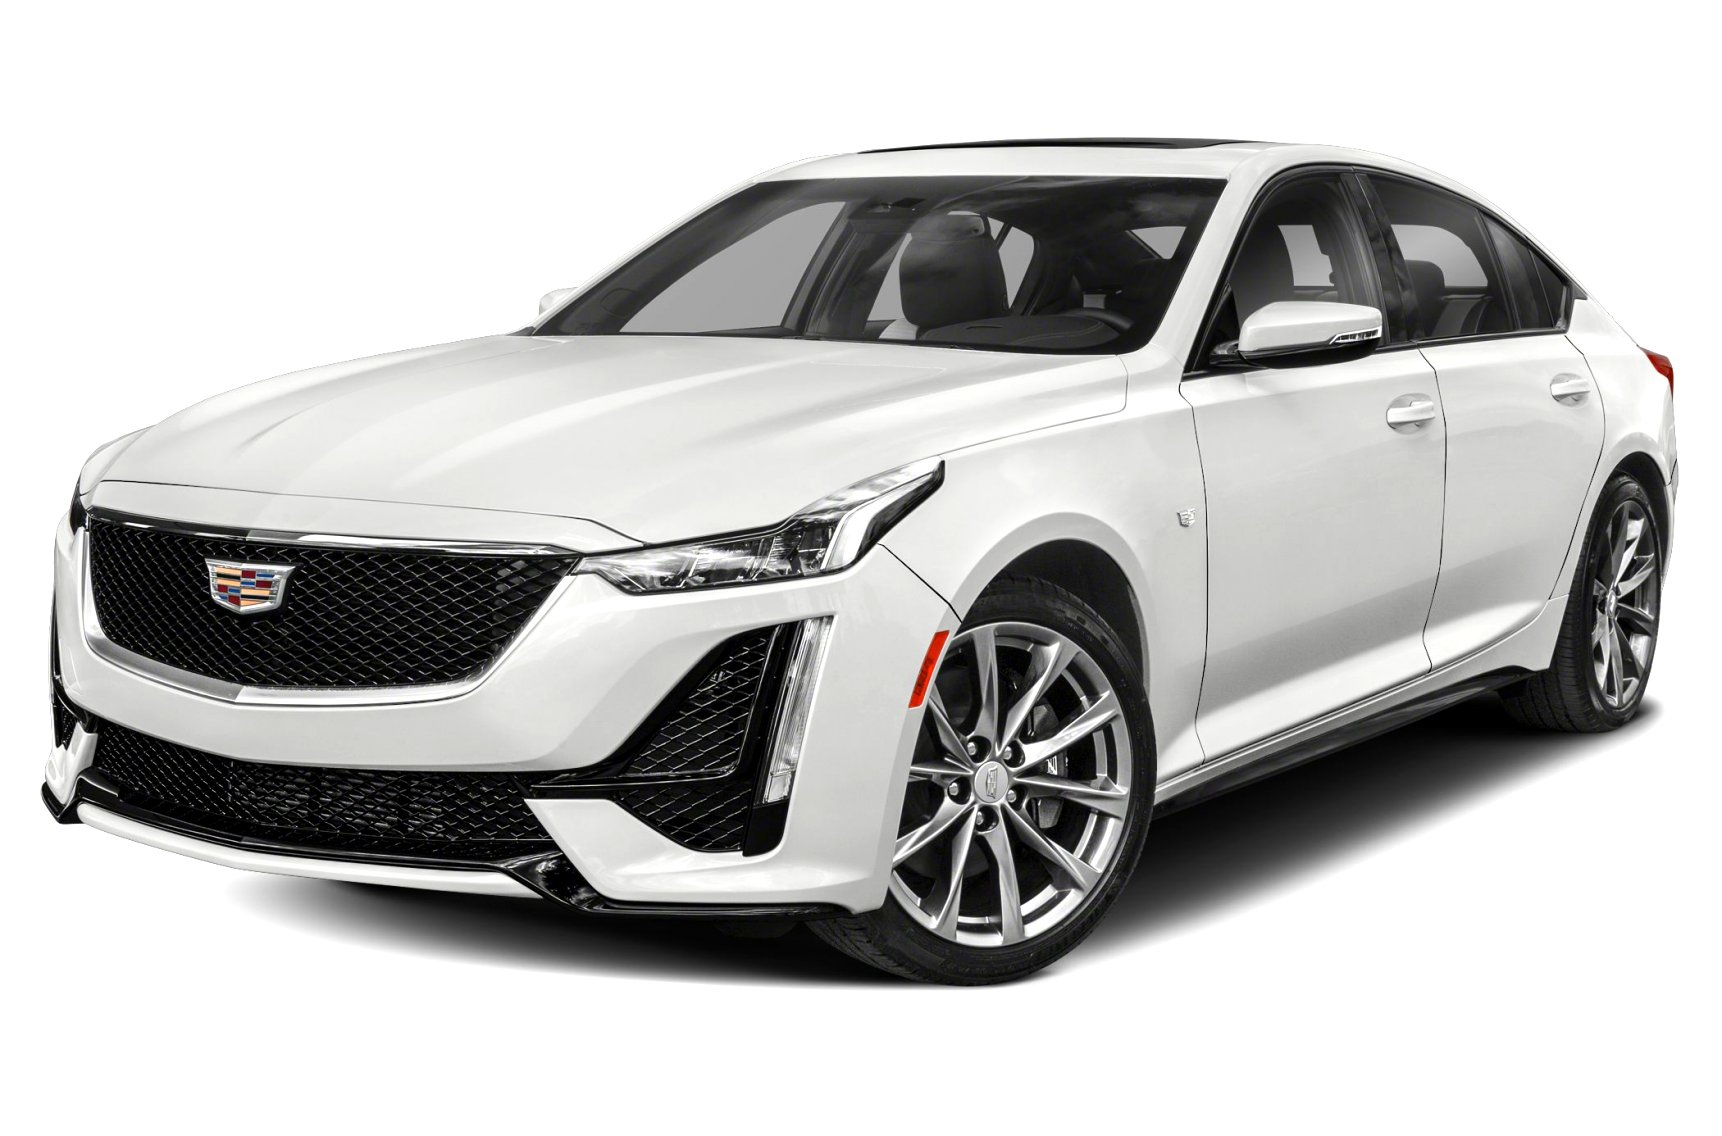 2020 cadillac incentives Price and Review